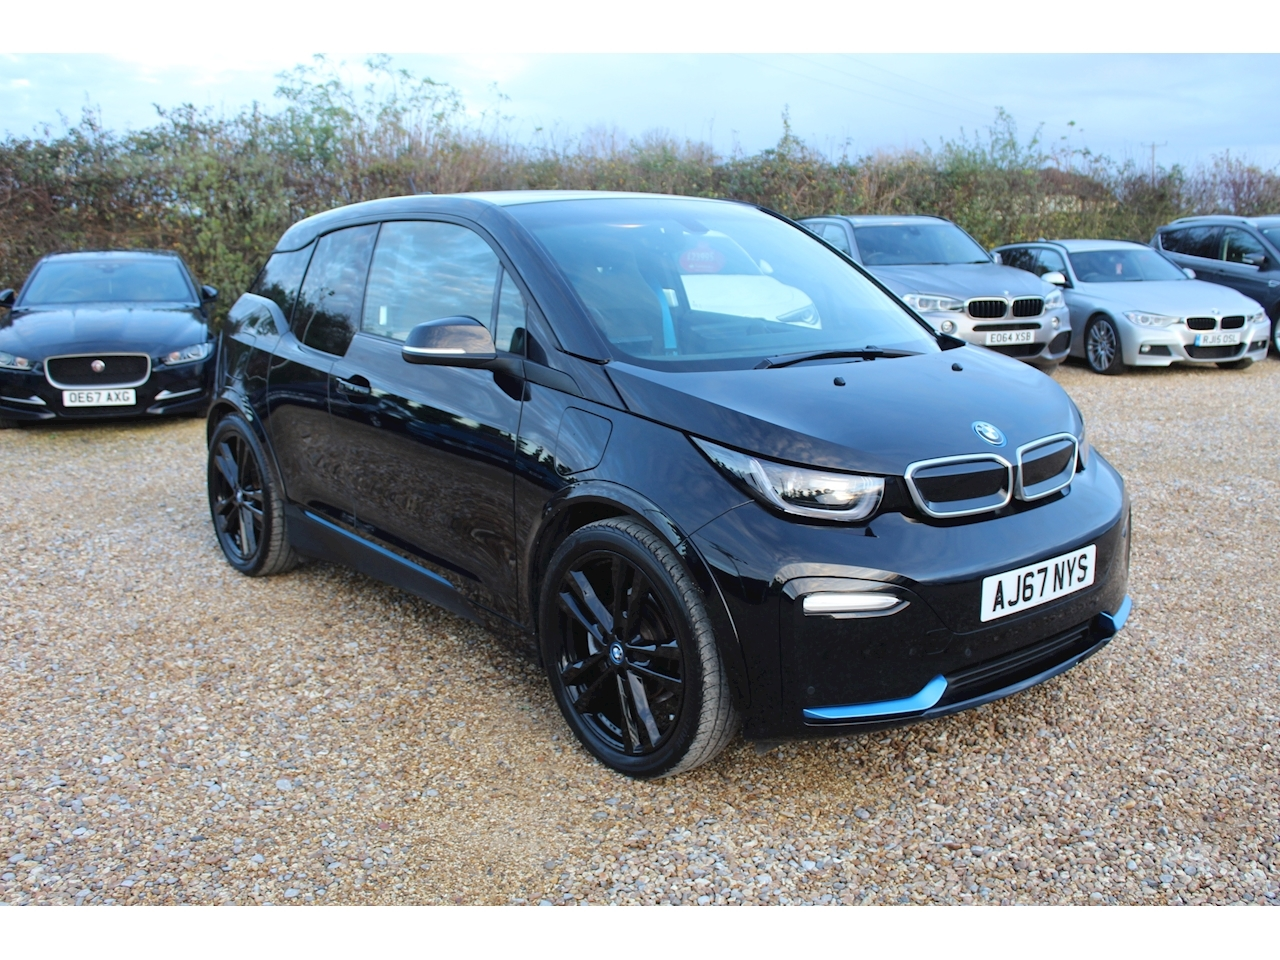 BMW i3 Series i3s 94Ah with Range Extender Hatchback 0.6 Automatic Petrol Hybrid